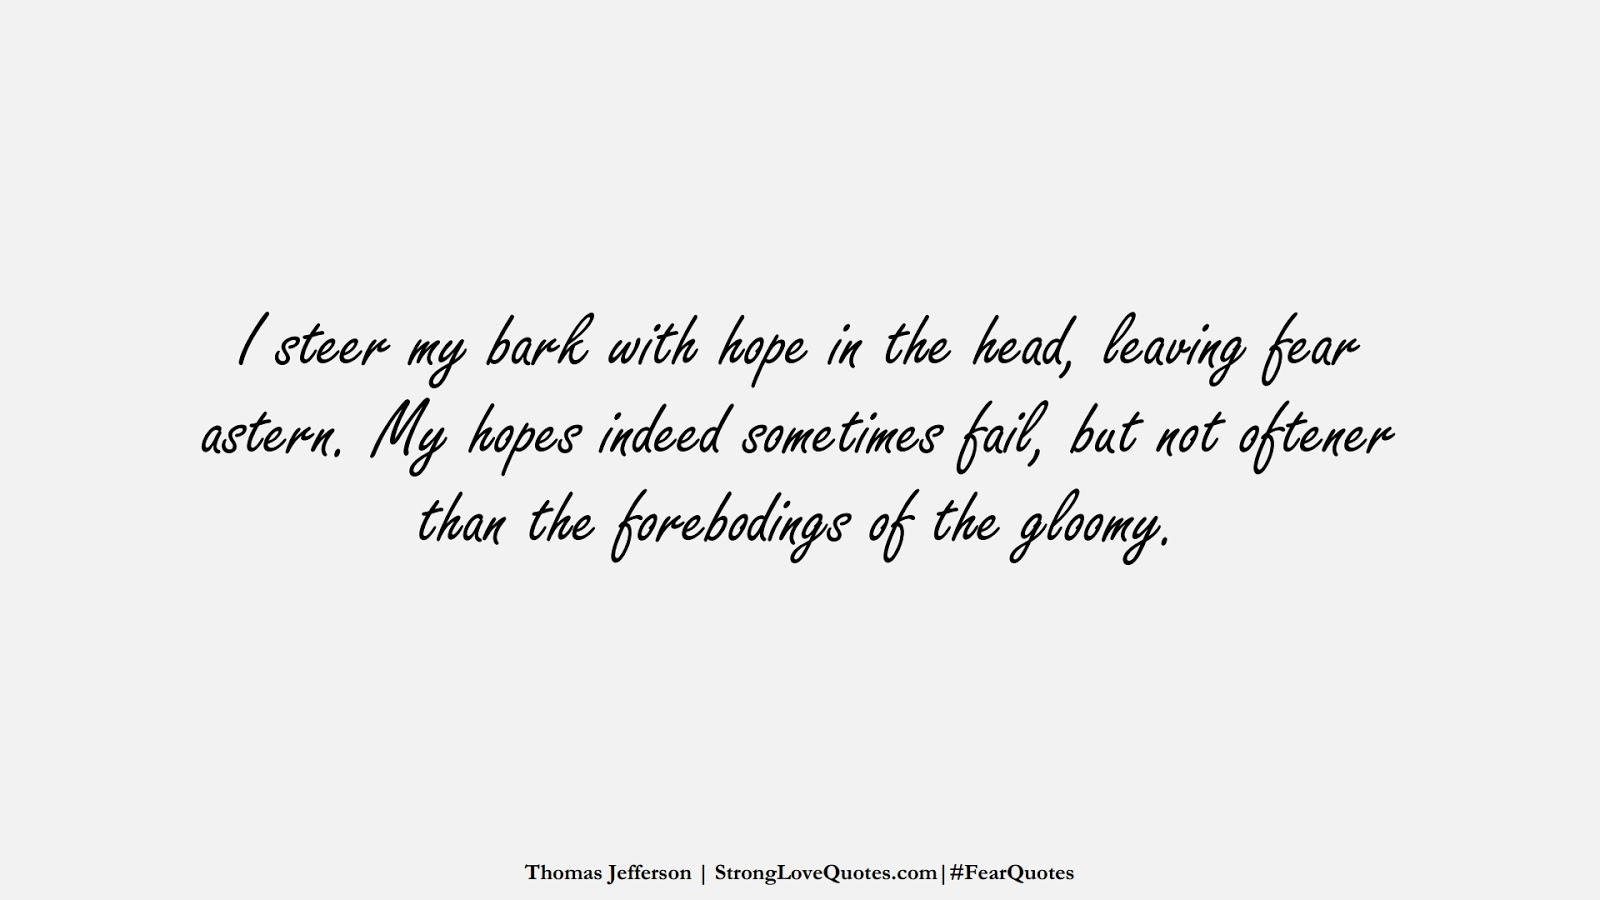 I steer my bark with hope in the head, leaving fear astern. My hopes indeed sometimes fail, but not oftener than the forebodings of the gloomy. (Thomas Jefferson);  #FearQuotes